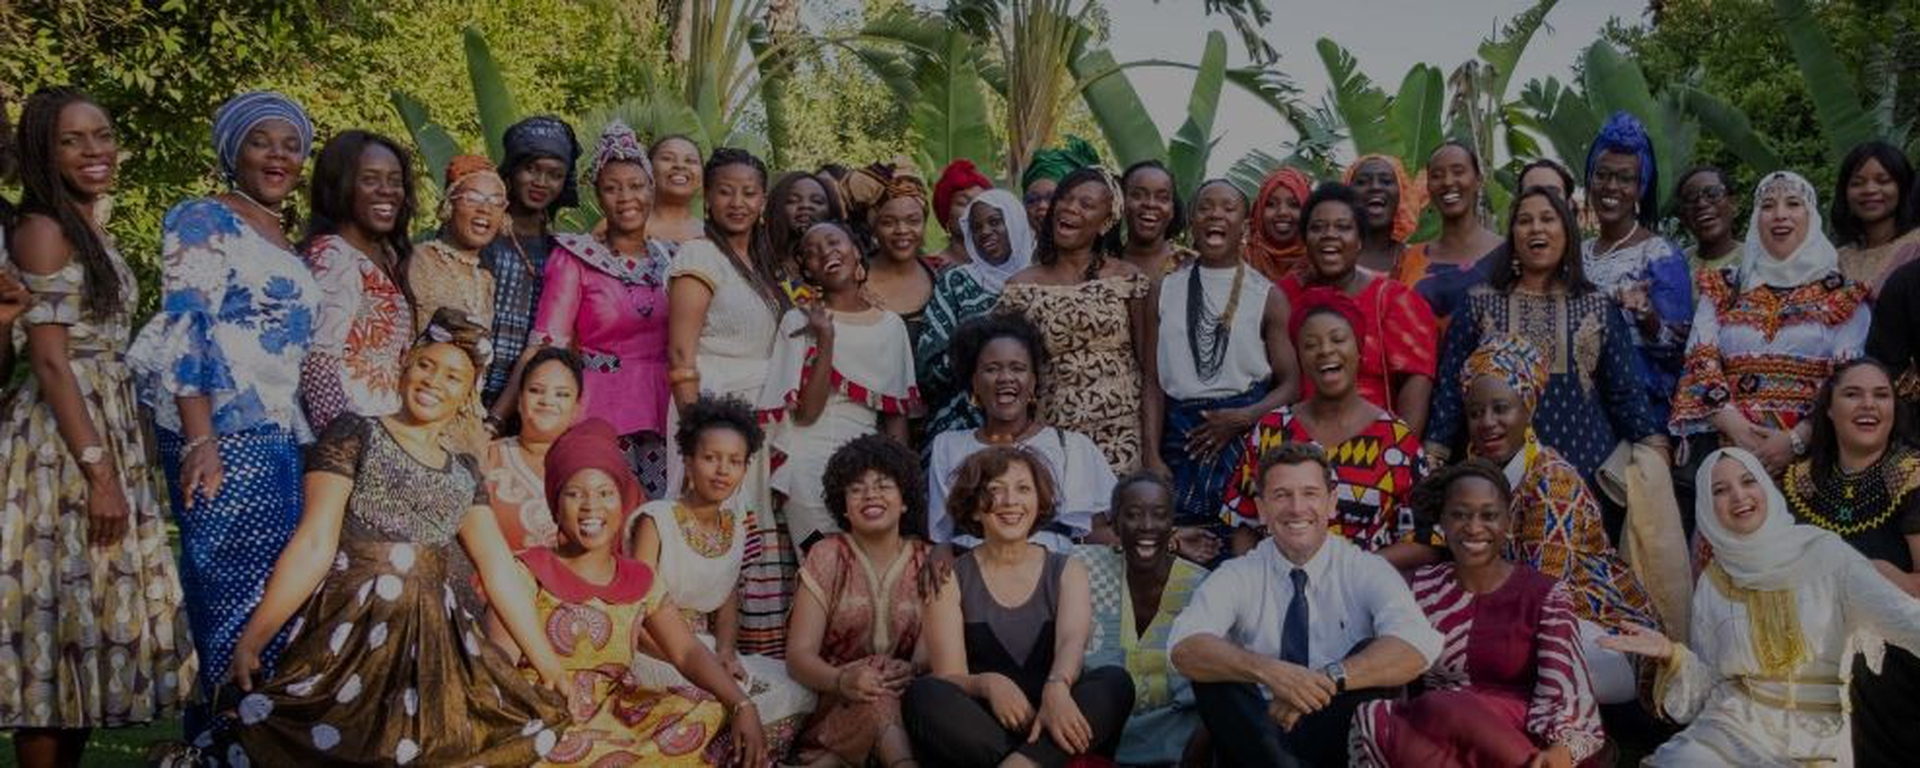 Women in Africa - Young Leaders Program 2021 Movemeback African initiative cover image